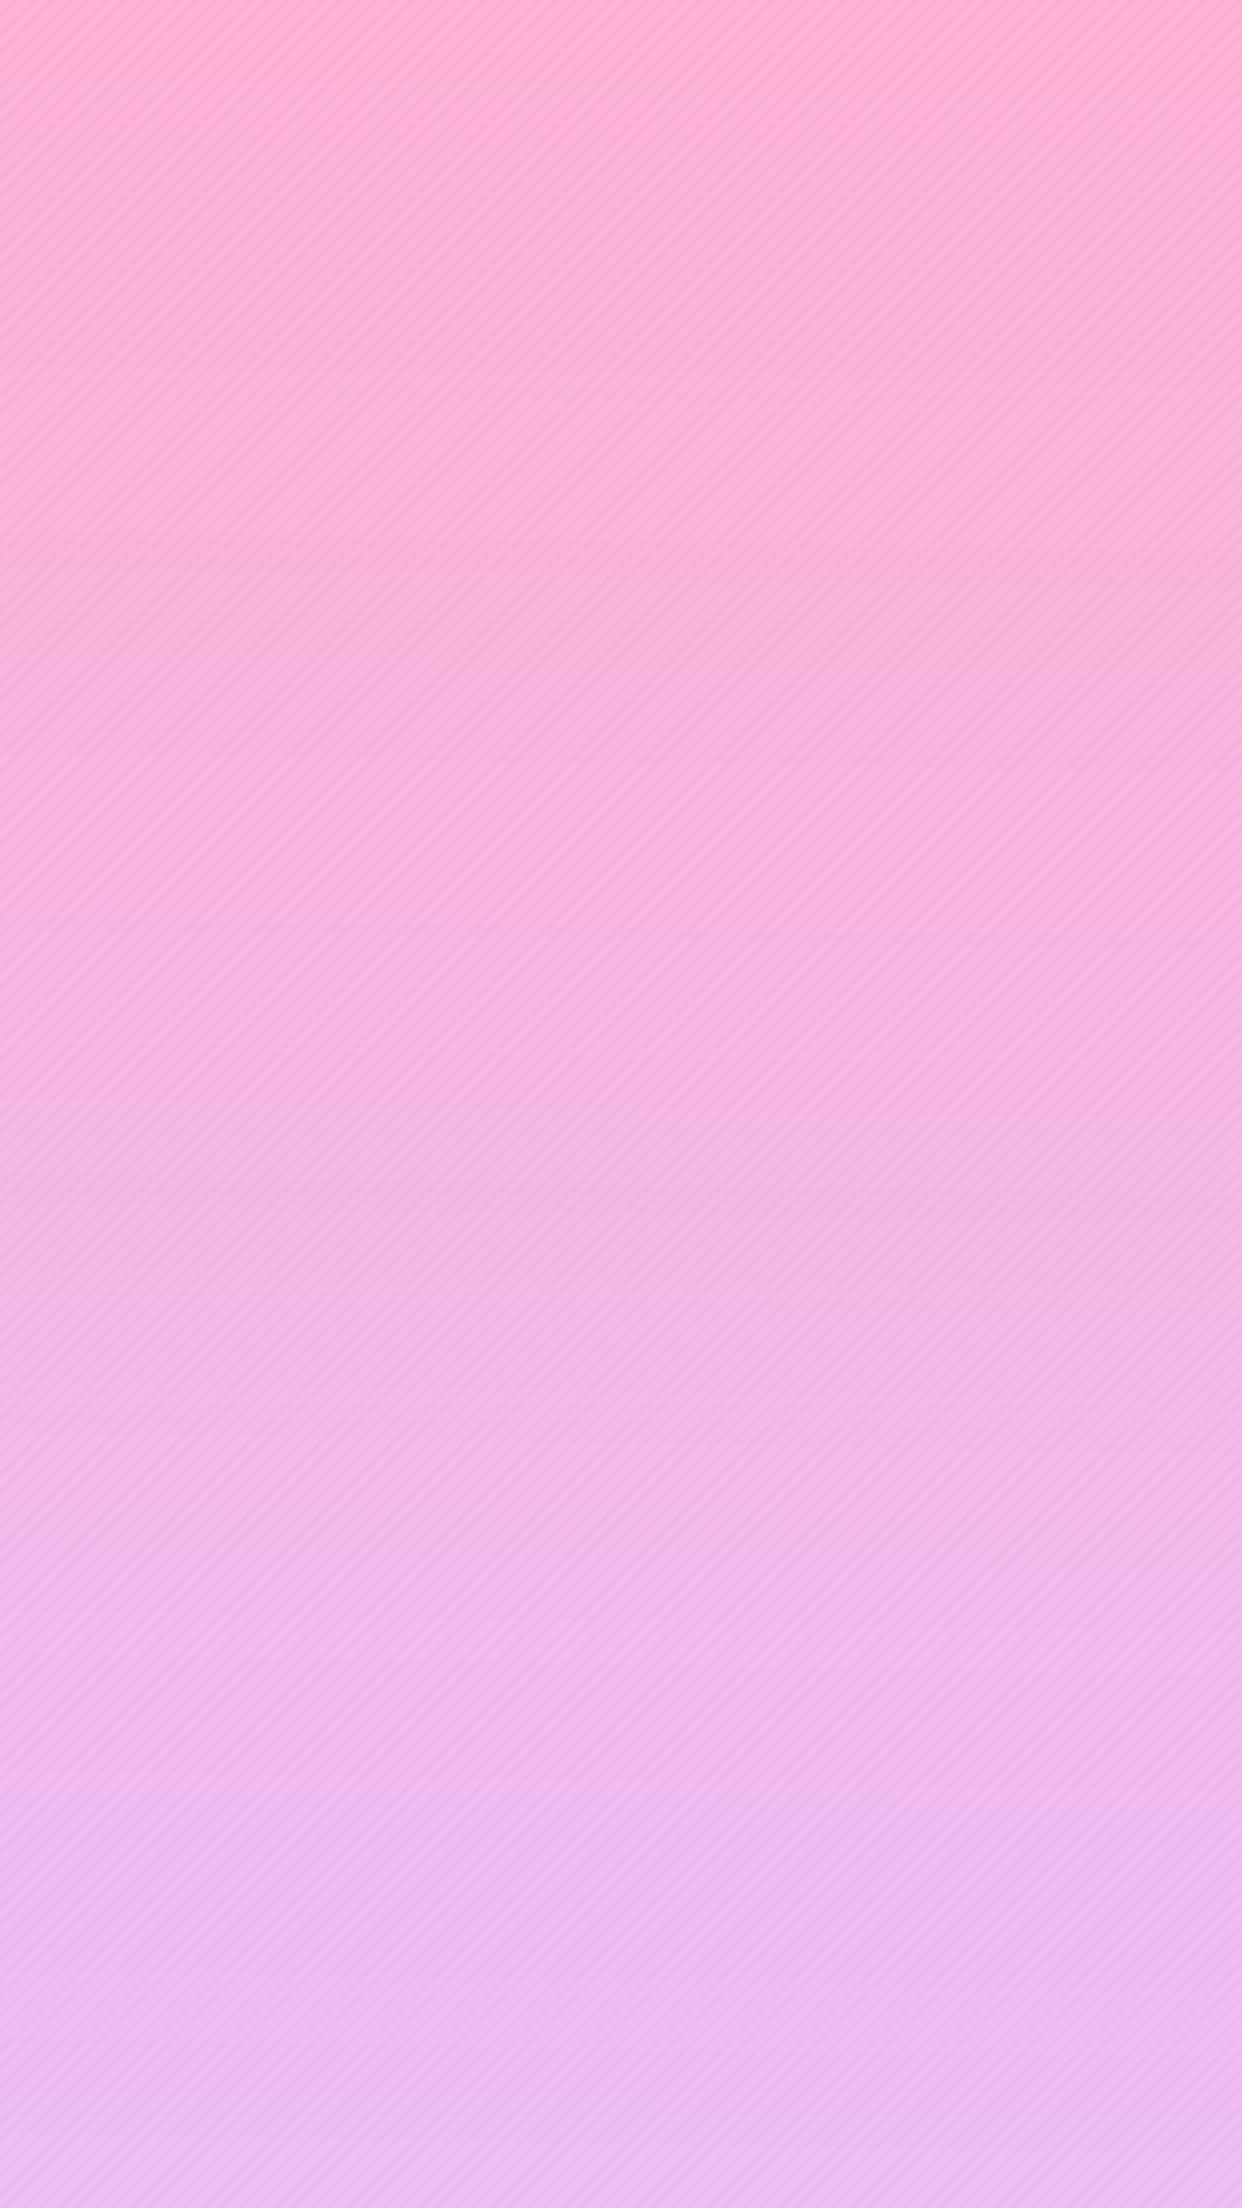 Wallpaper, background, iPhone, Android, HD, pink, purple